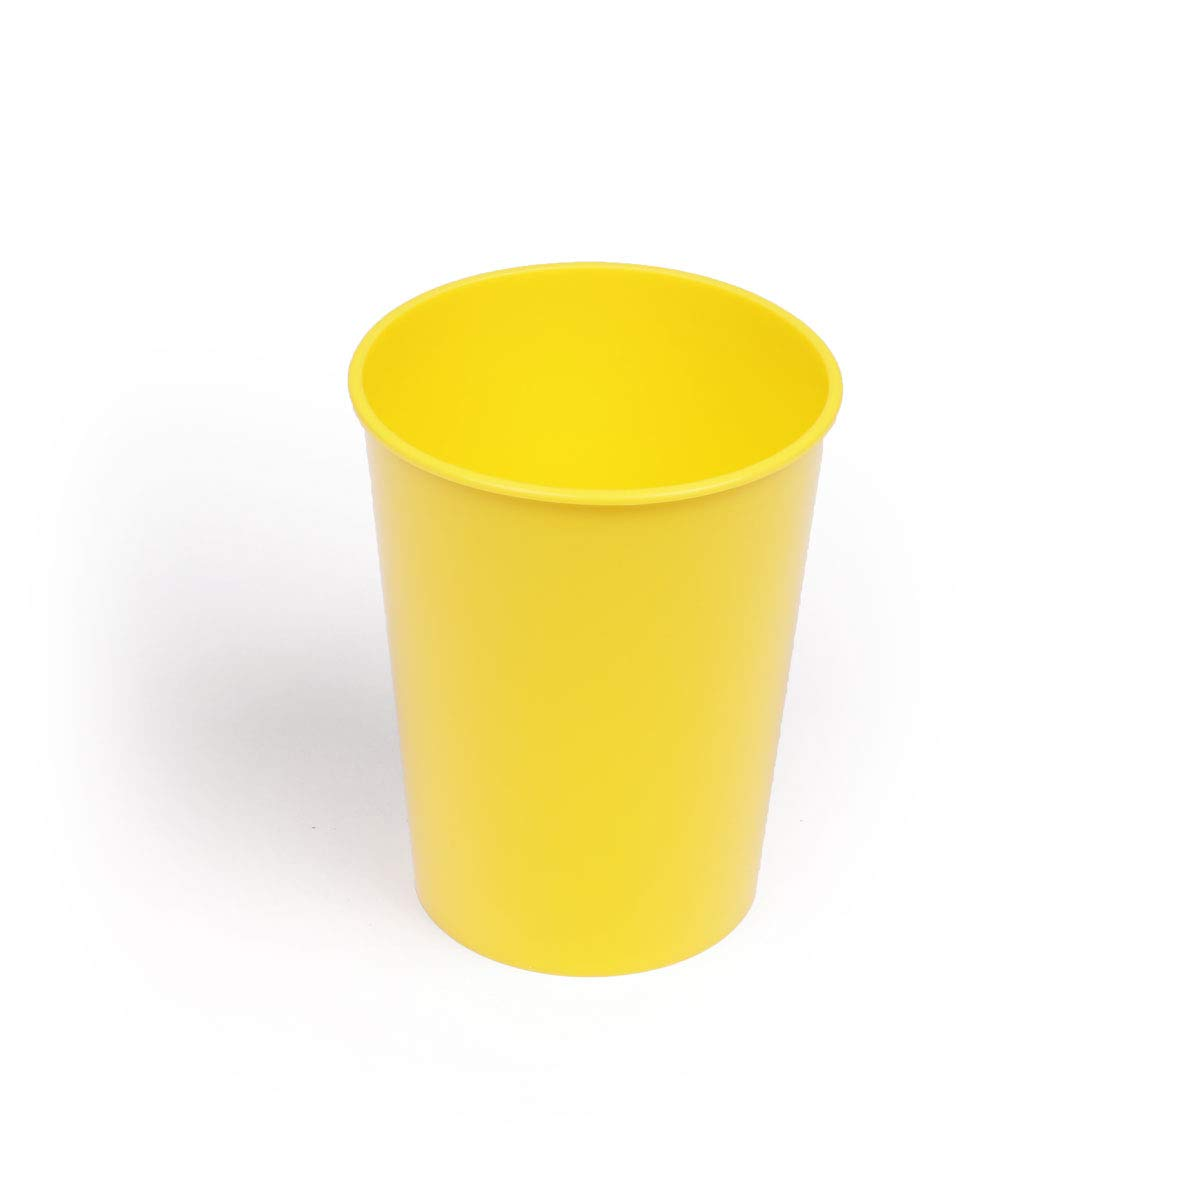 8 oz Break-Resistant Reusable Cup  In a Variety of Vibrant Colors (Yellow 12 Pack)